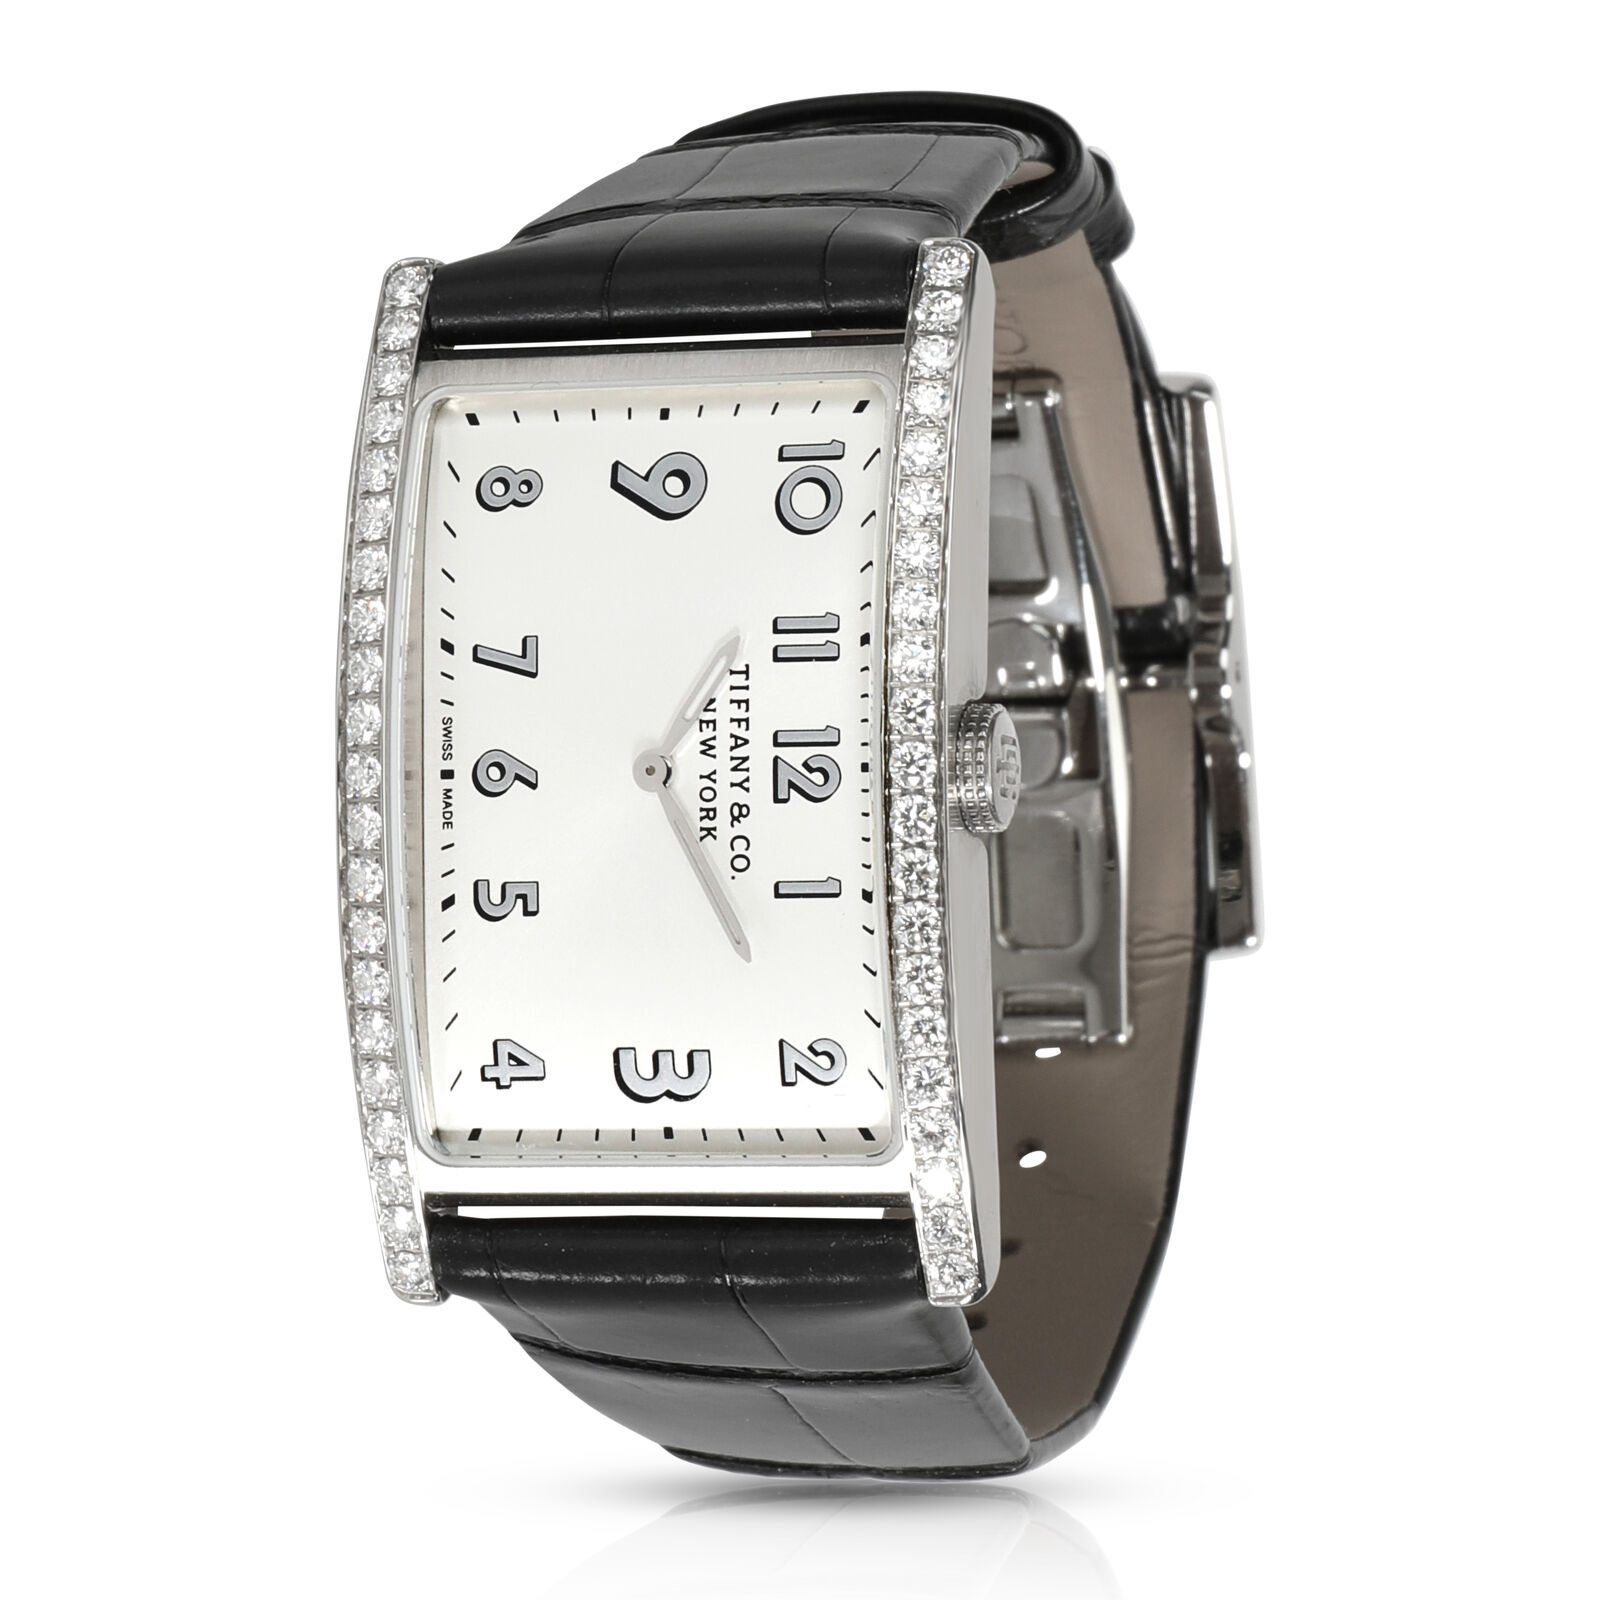 Image of Tiffany & Co. East West 60558078 Women's Watch in Stainless Steel